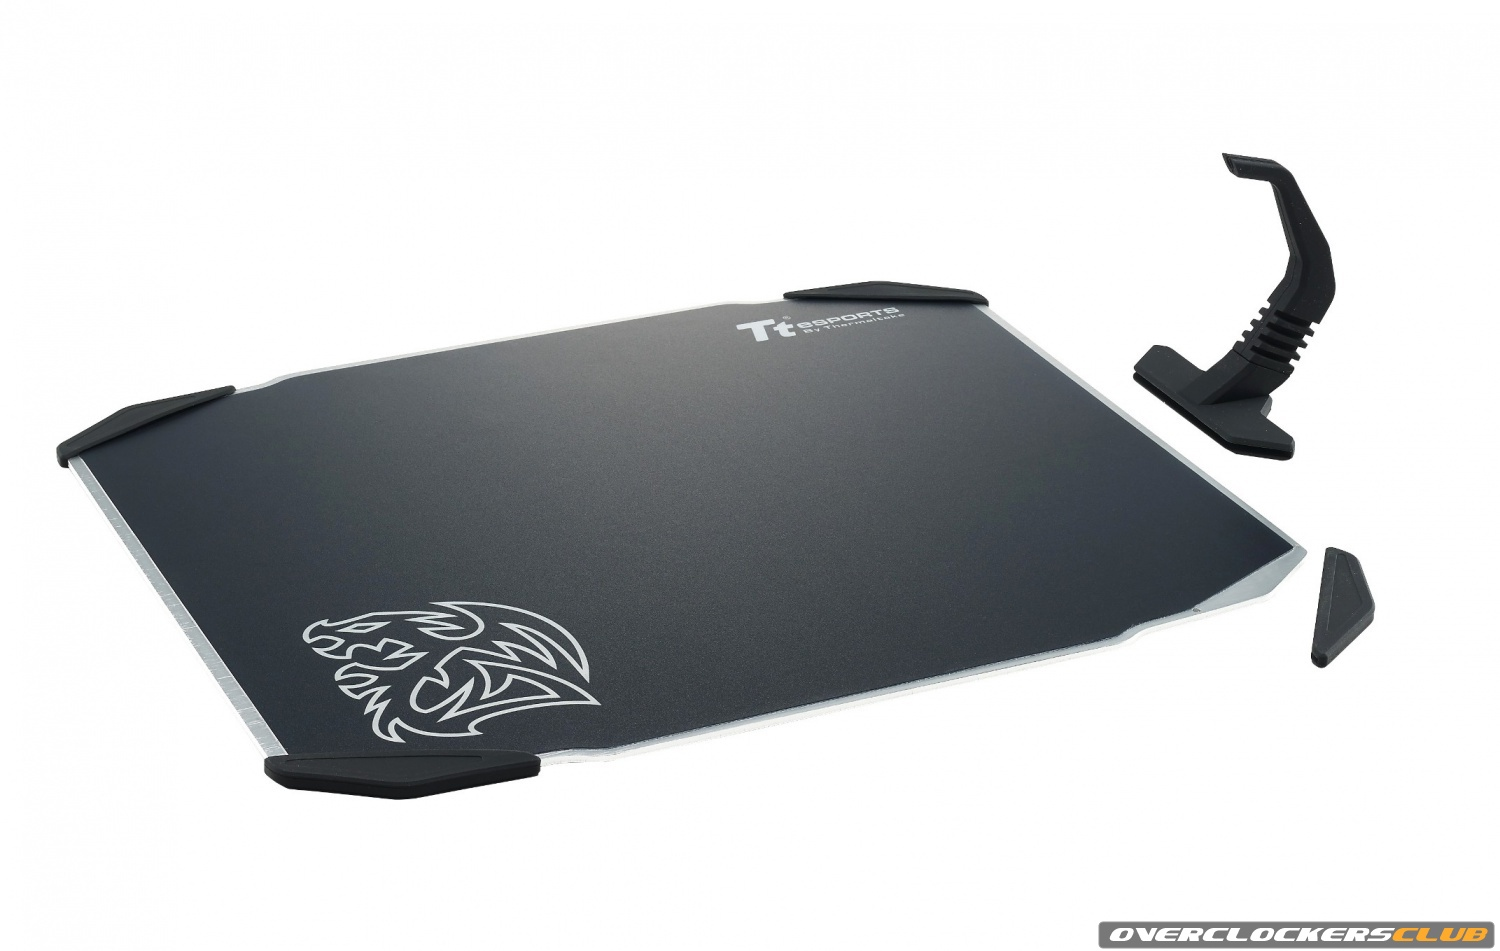 Tt eSPORTS Launches the DRACONEM Aluminum Mouse Pad